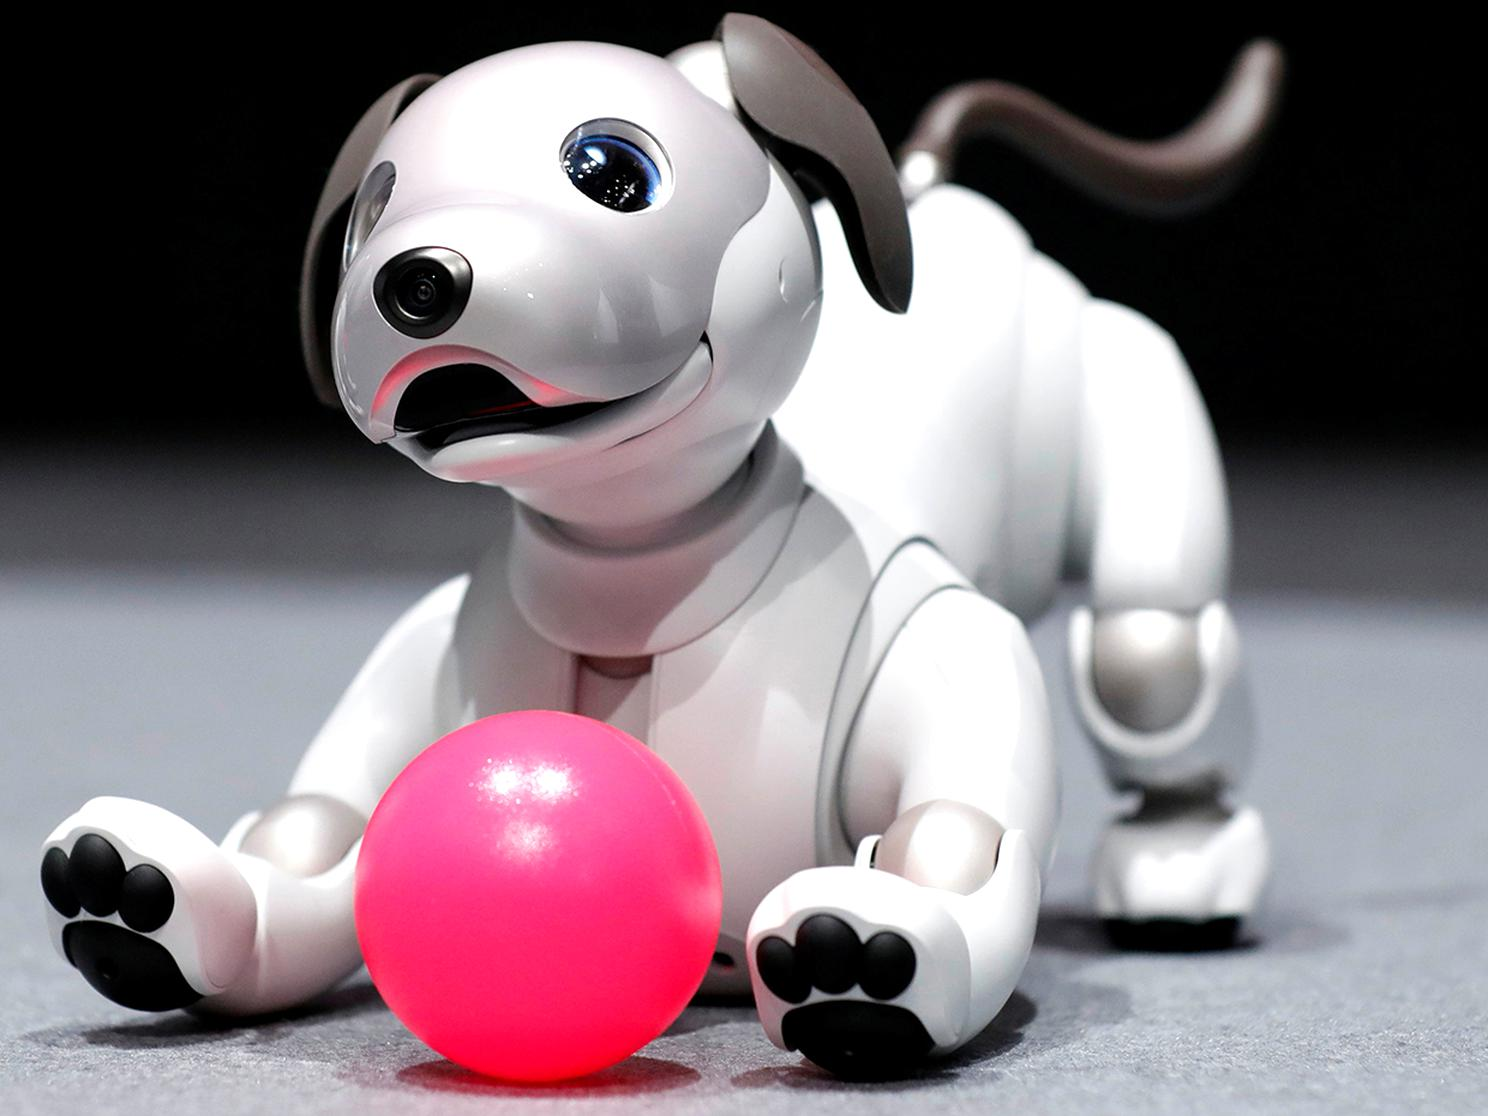 aibo robot d'occasion